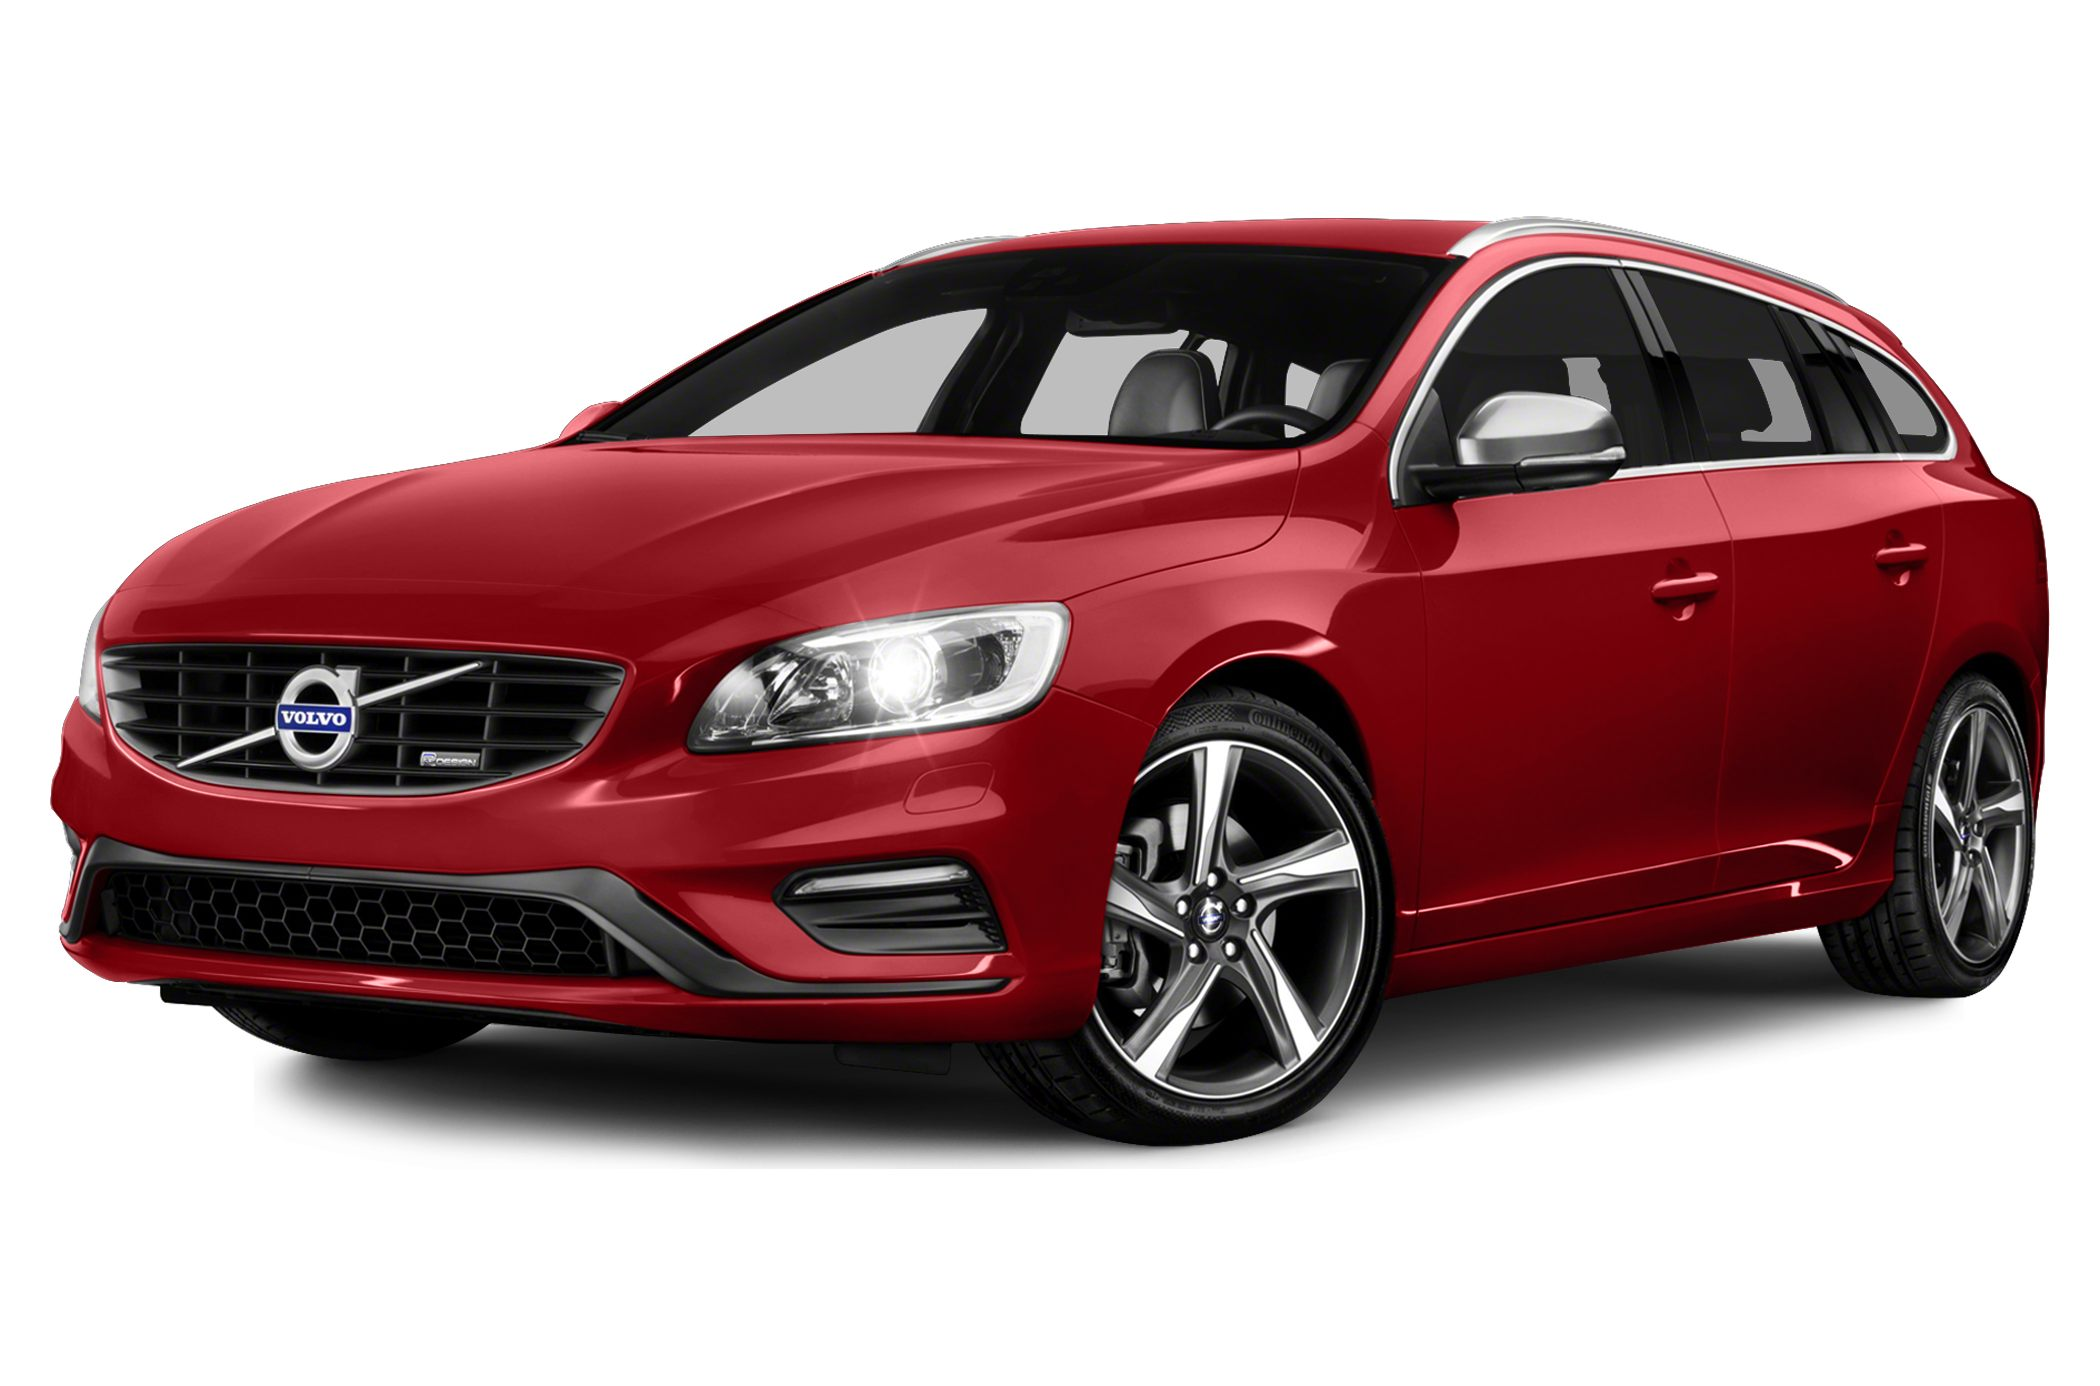 2015 Volvo V60 T6 R-Design Platinum Wagon for sale in Santa Rosa for $52,225 with 5 miles.